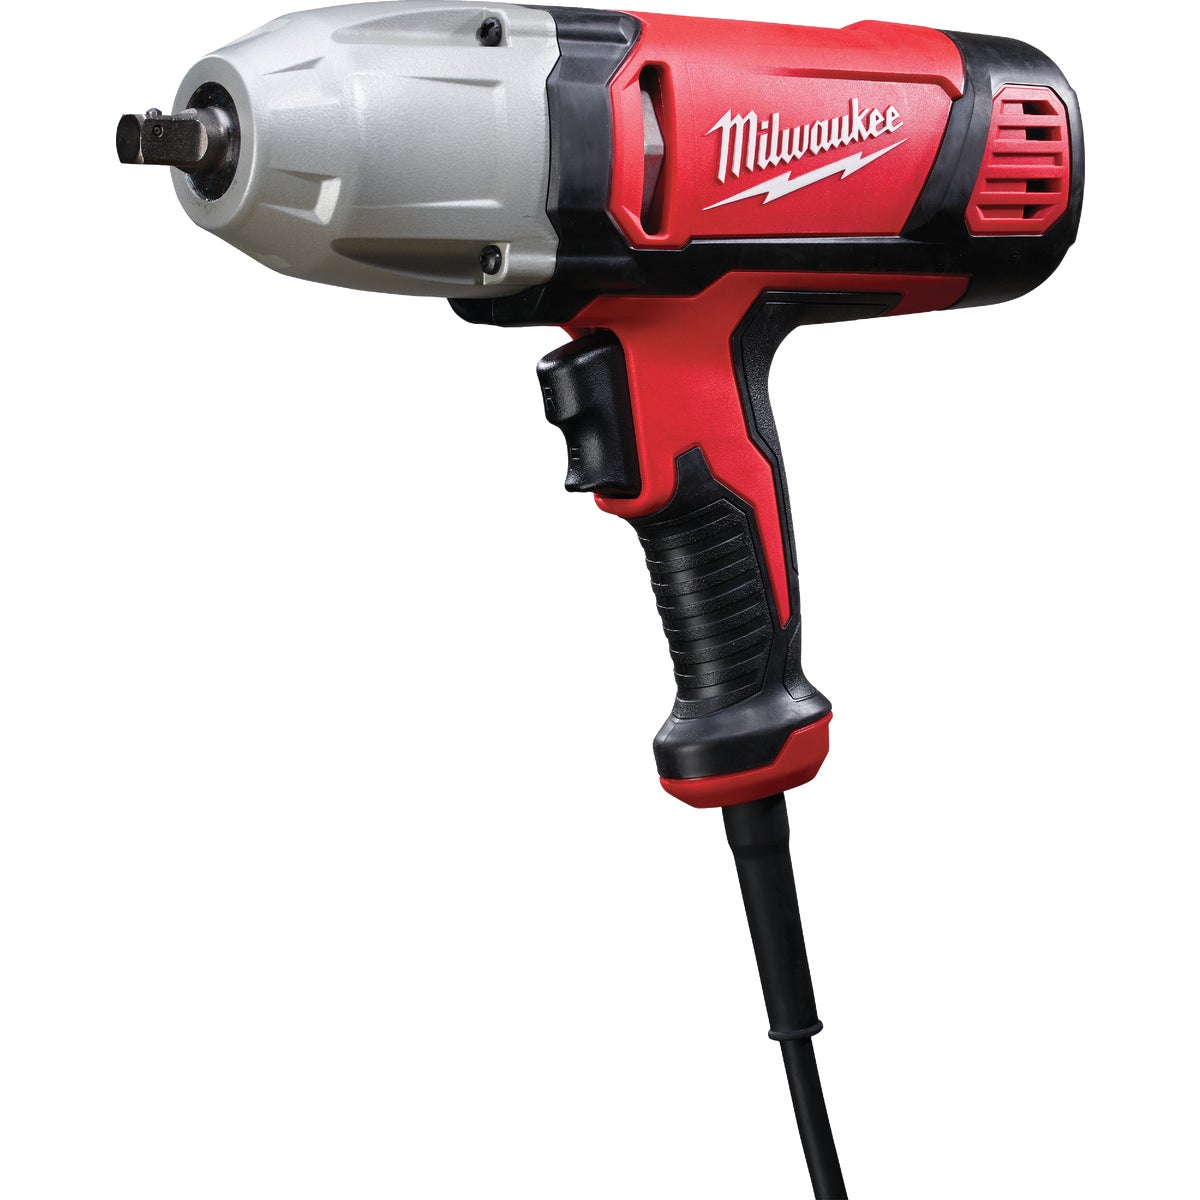 "1/2"" IMPACT WRENCH - 907020 by Milwaukee Elec Tool"